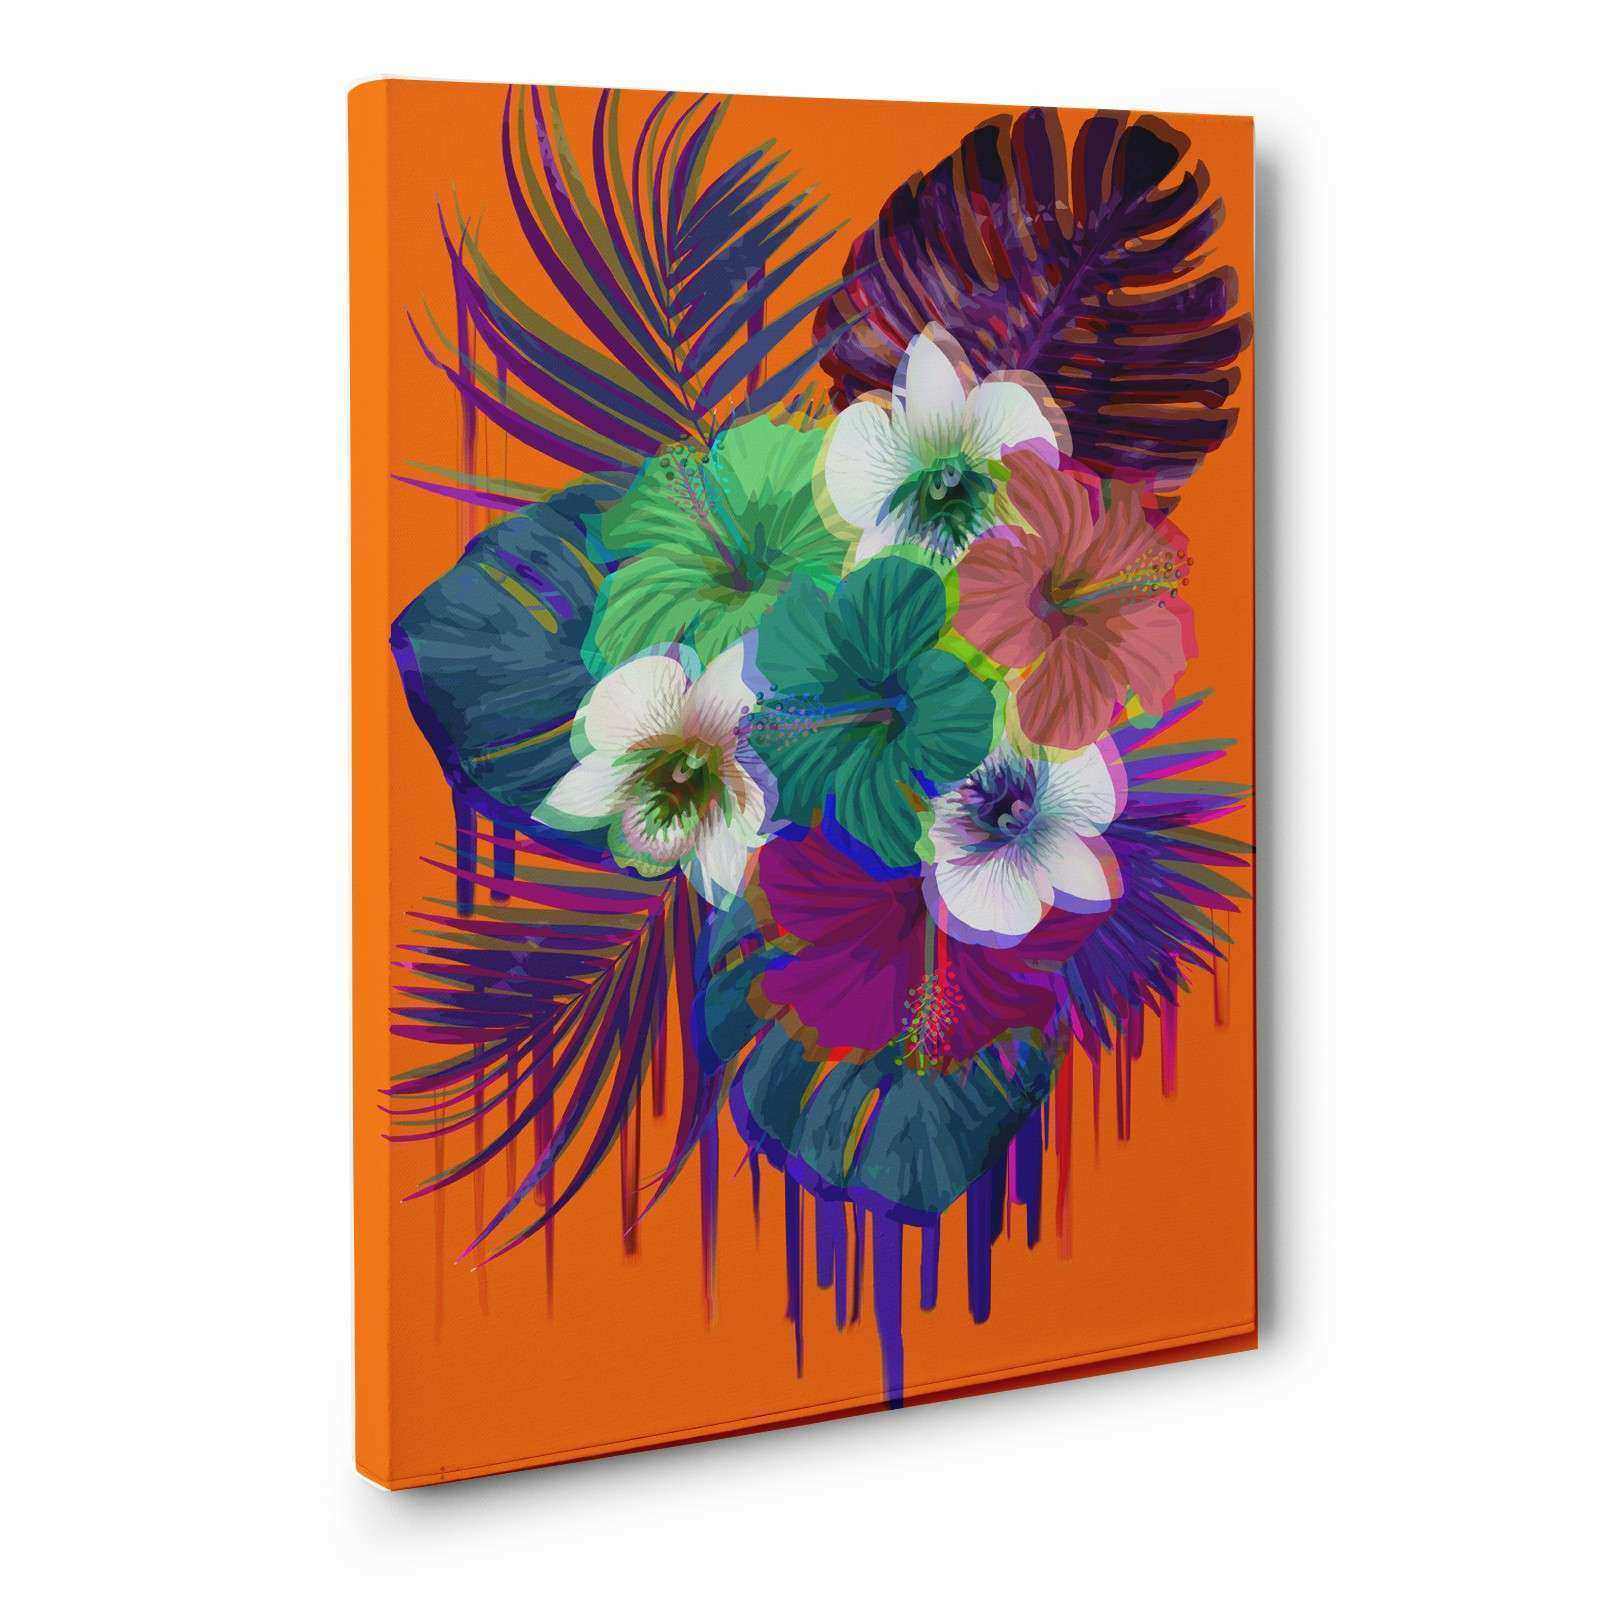 Neon Tropical Flowers Bright Orange CANVAS Wall Art Home